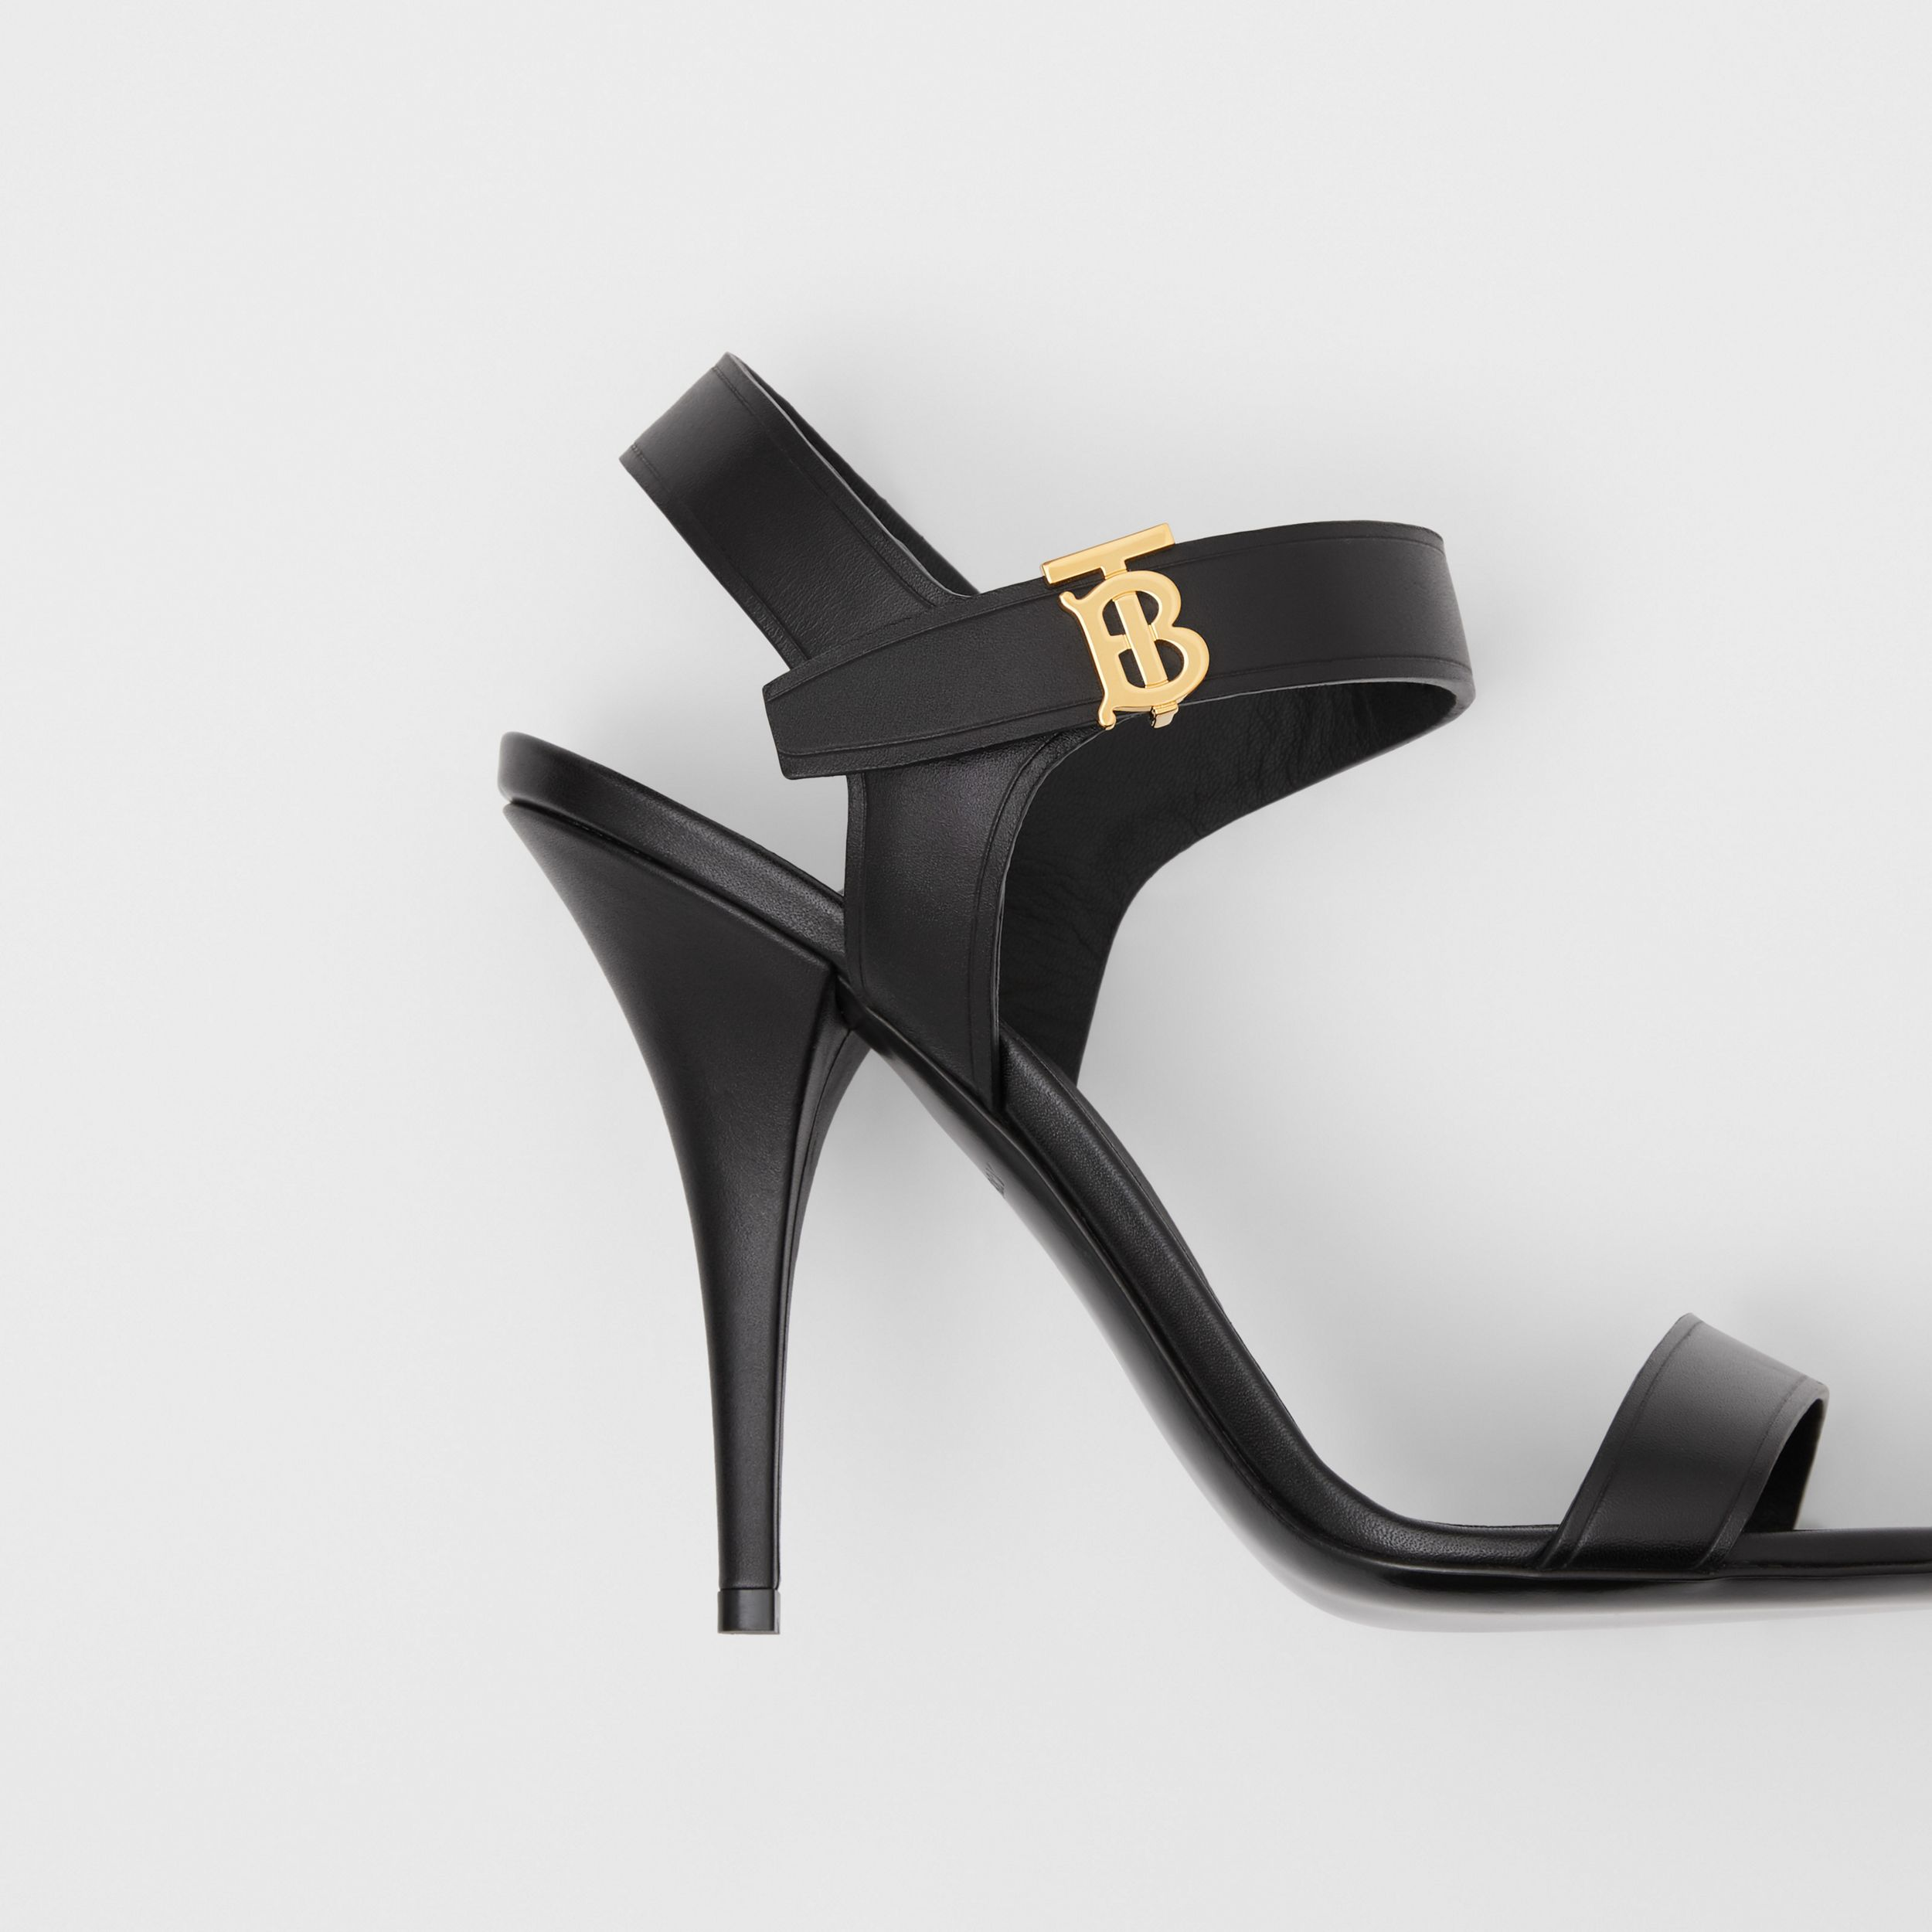 Monogram Motif Leather Sandals in Black - Women | Burberry - 2